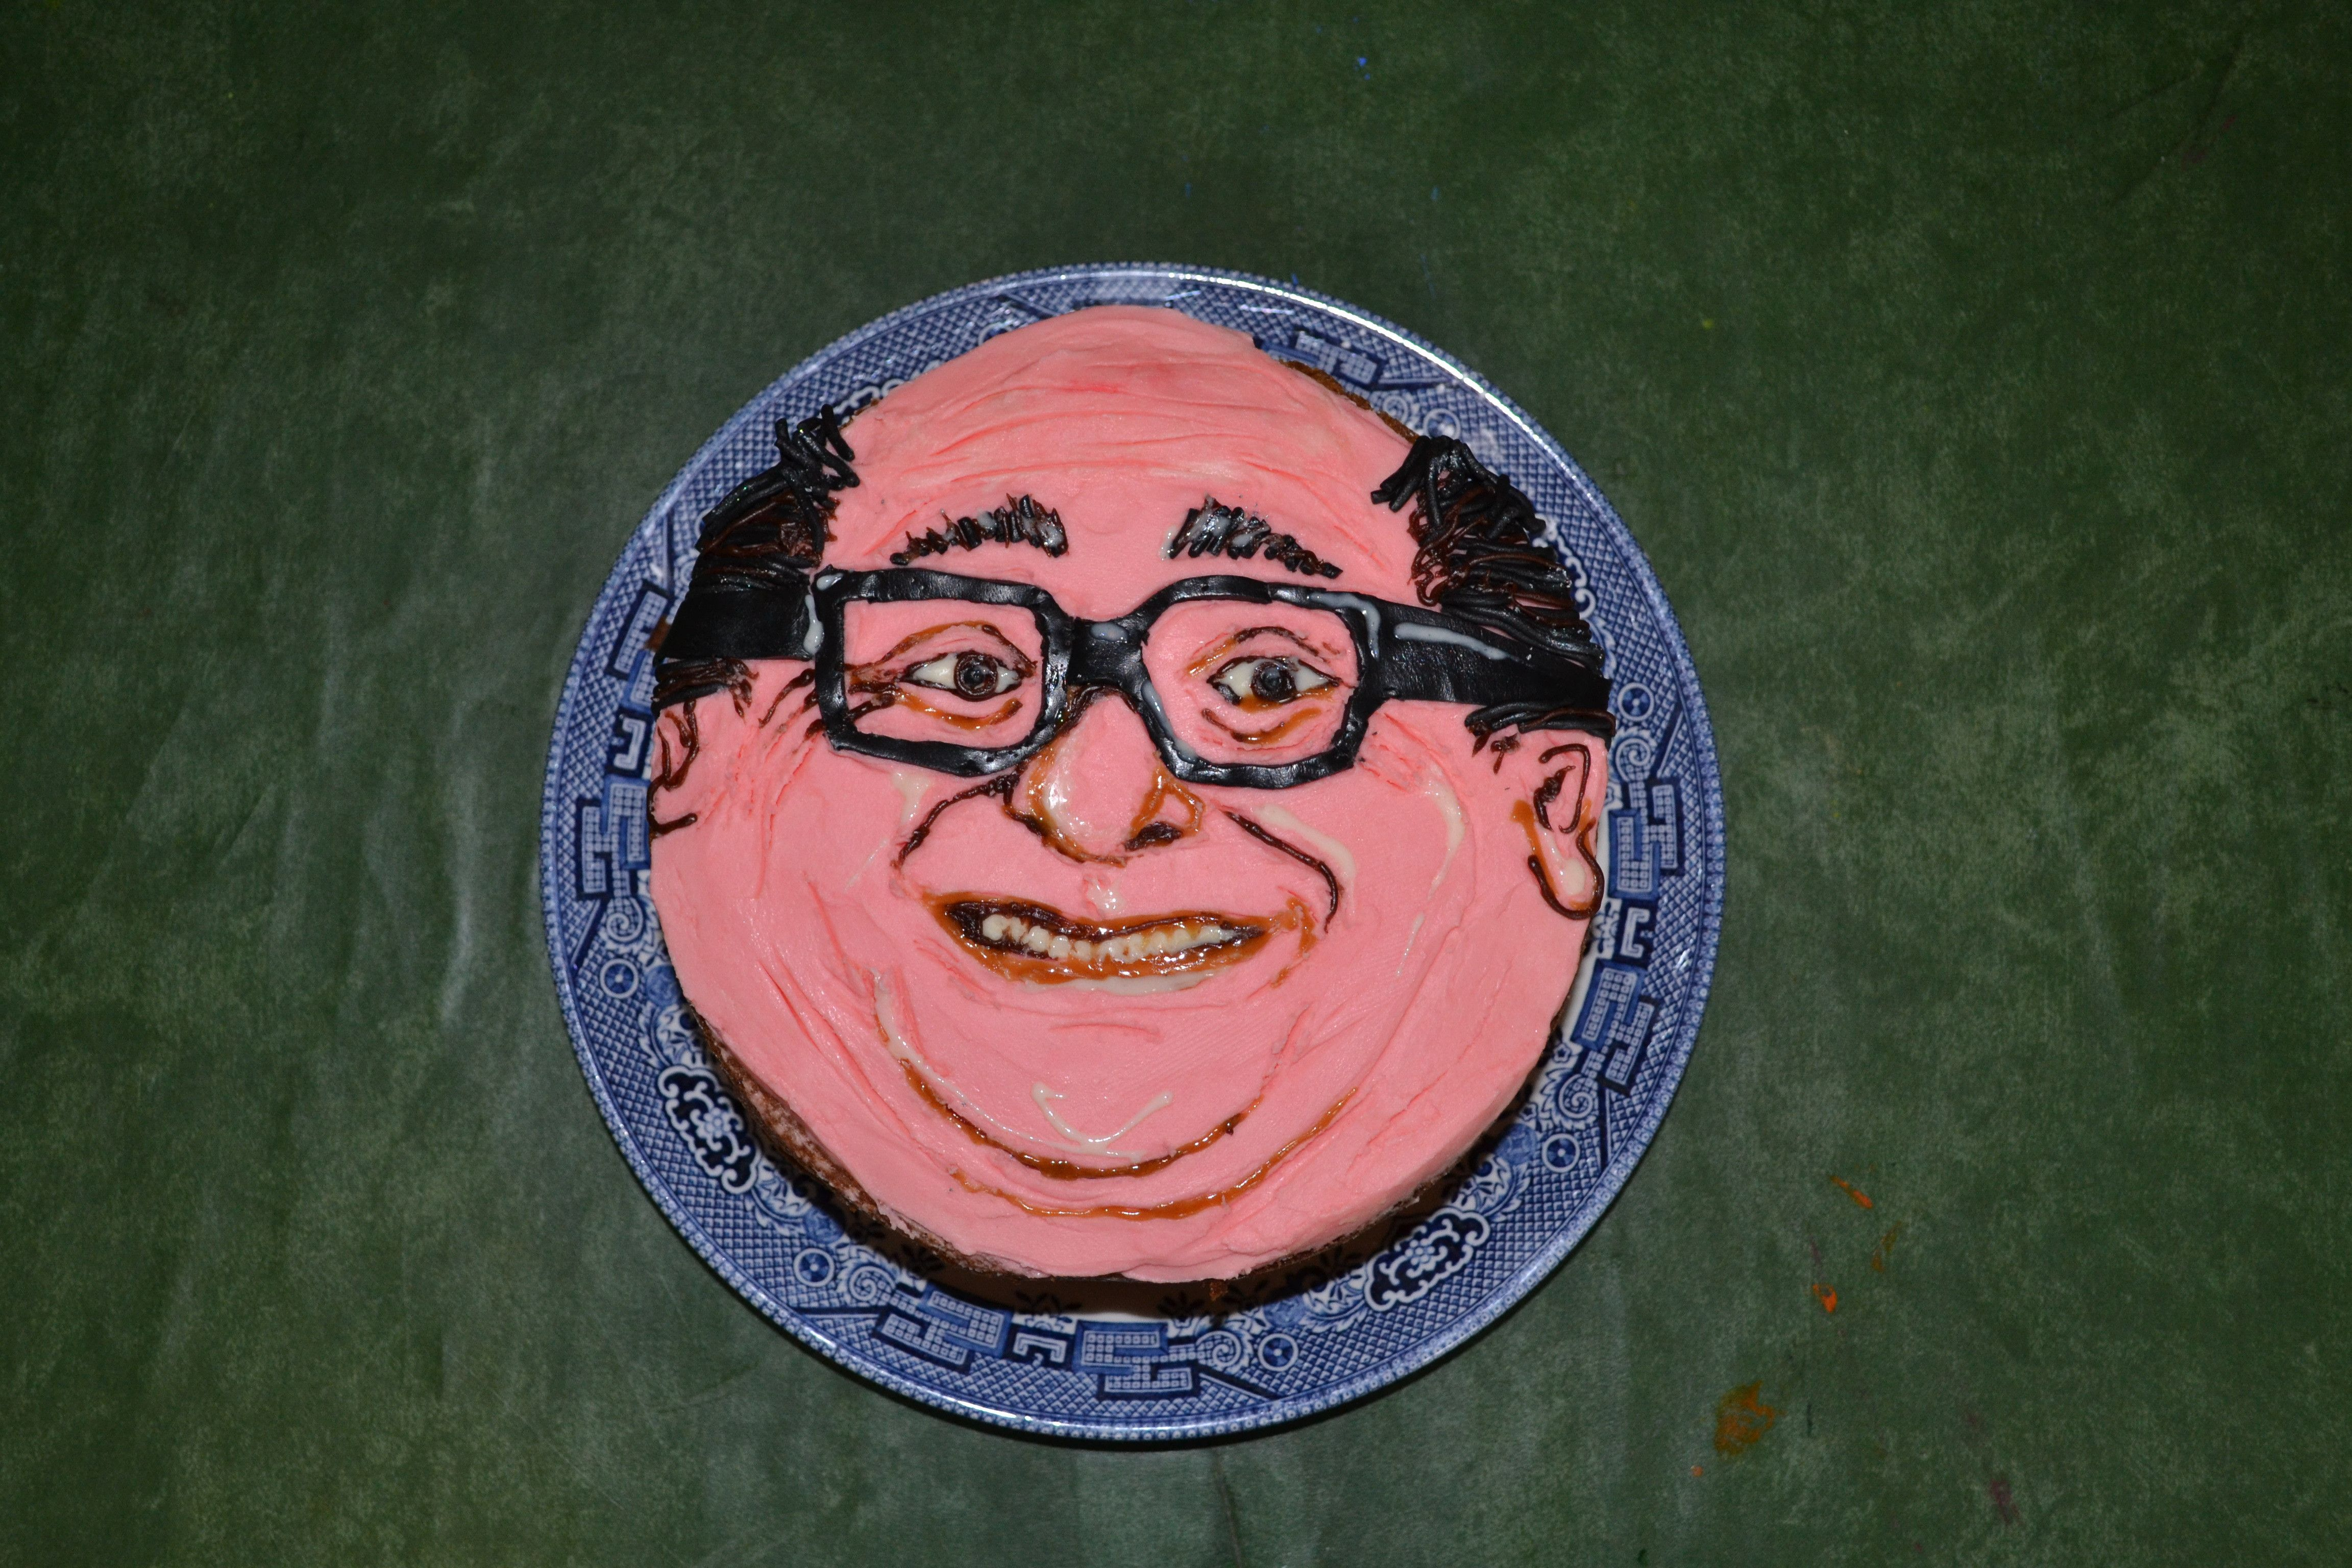 danny devito birthday My sister asked for a Danny DeVito cake for her birthday, I  danny devito birthday